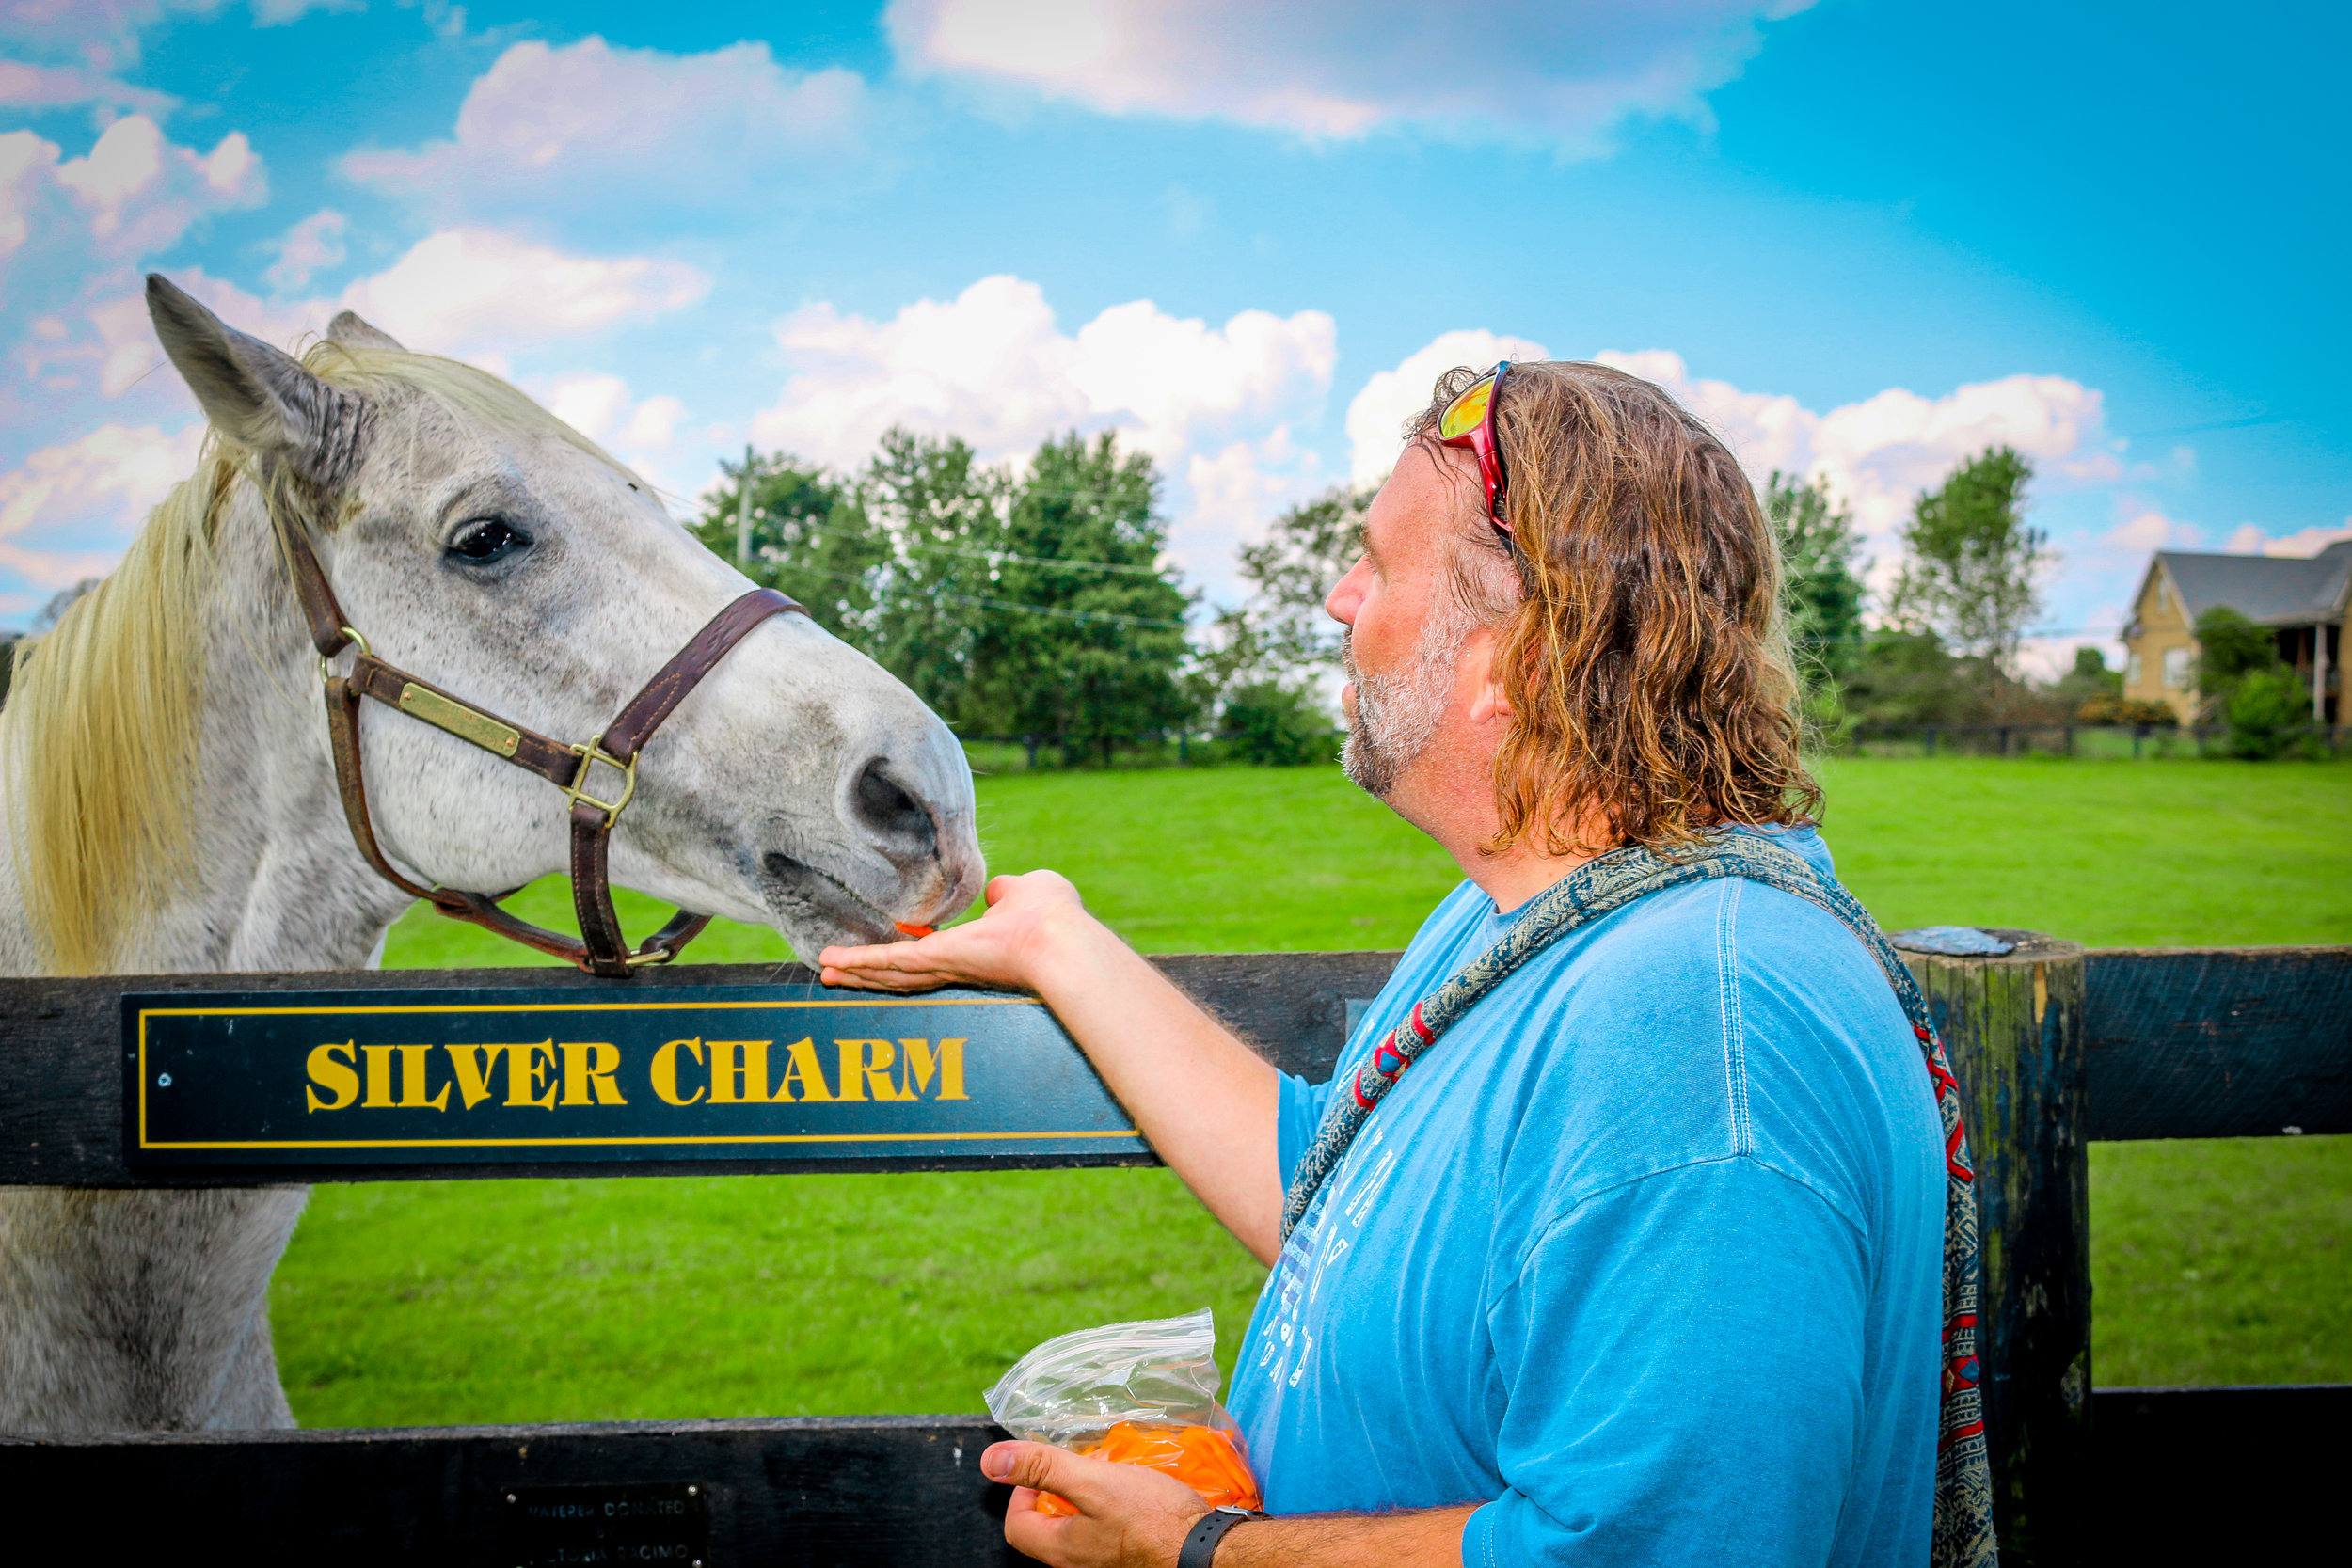 Me and Silver Charm at Old Friends Farm